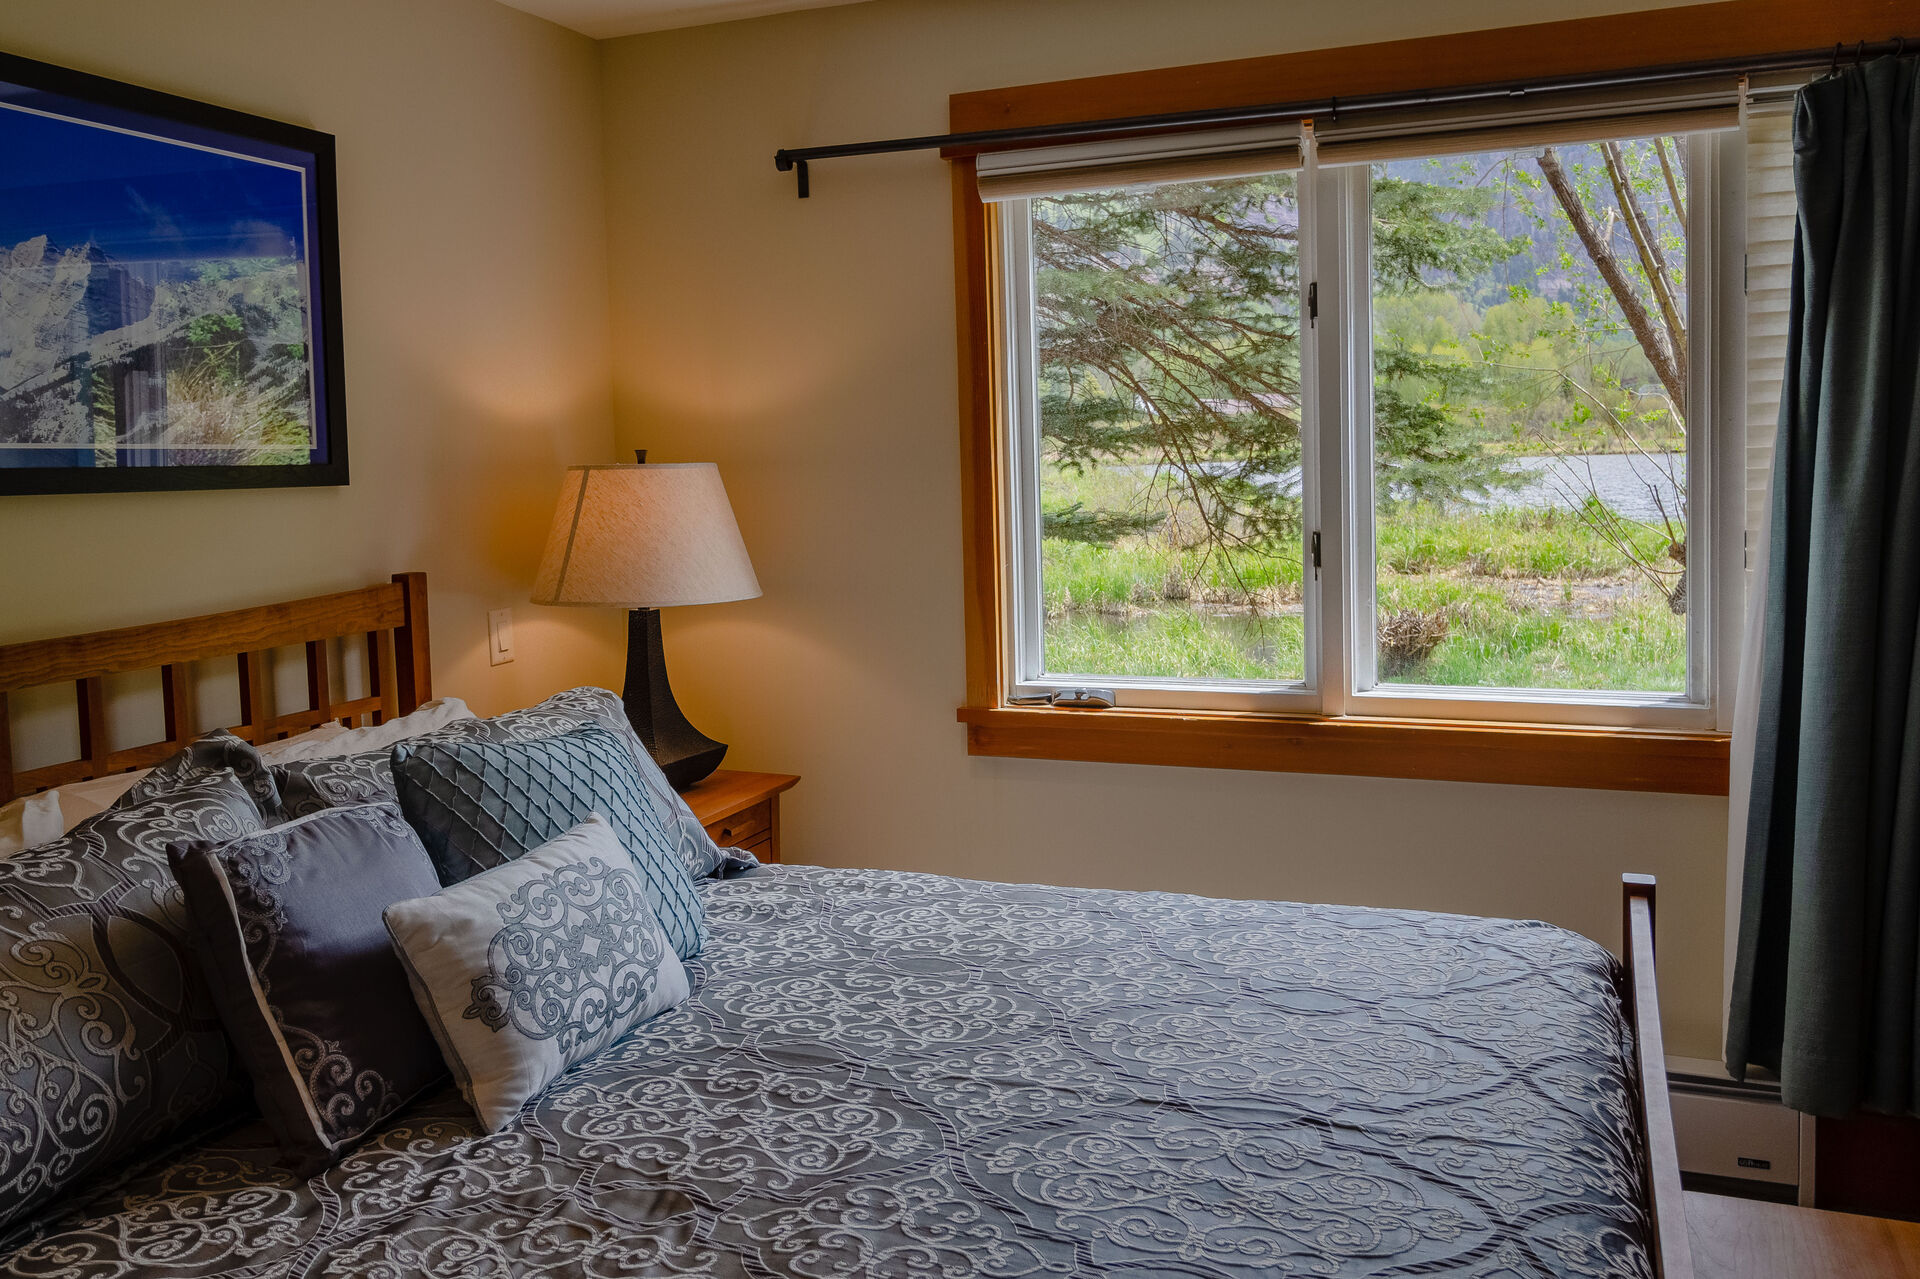 Bedroom with Large Bed and Windows with View of the Valley